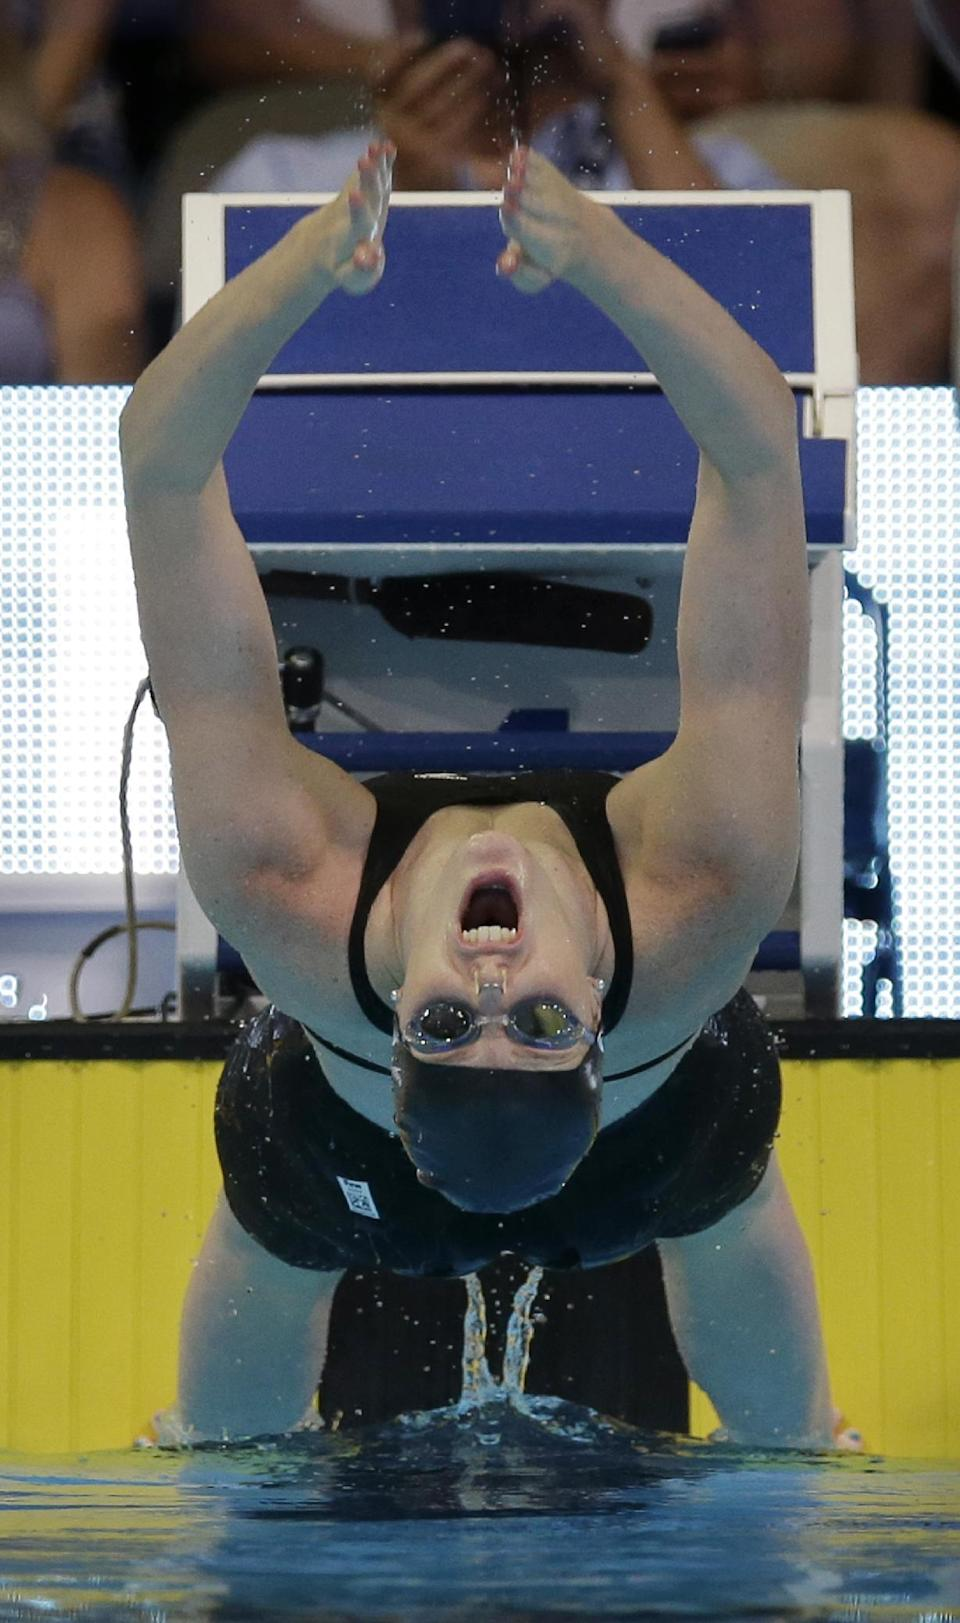 Missy Franklin starts in the women's 100-meter backstroke preliminaries at the U.S. Olympic swimming trials, Tuesday, June 26, 2012, in Omaha, Neb. (AP Photo/David J. Phillip)